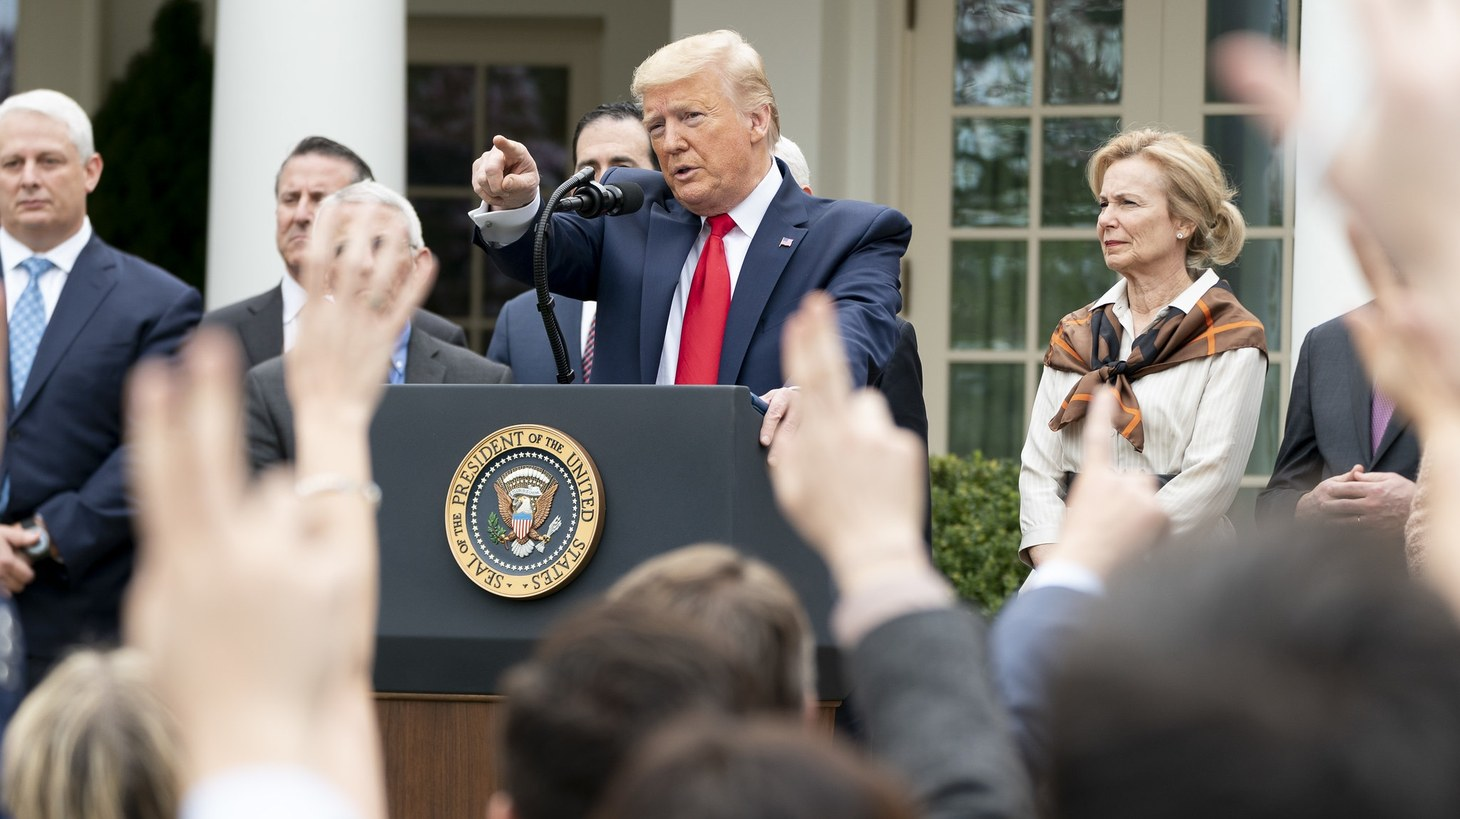 President Donald J. Trump points to a reporter to ask a question after announcing a national emergency to further combat the Coronavirus outbreak, at a news conference Friday, March 13, 2020, in the Rose Garden of the White House.